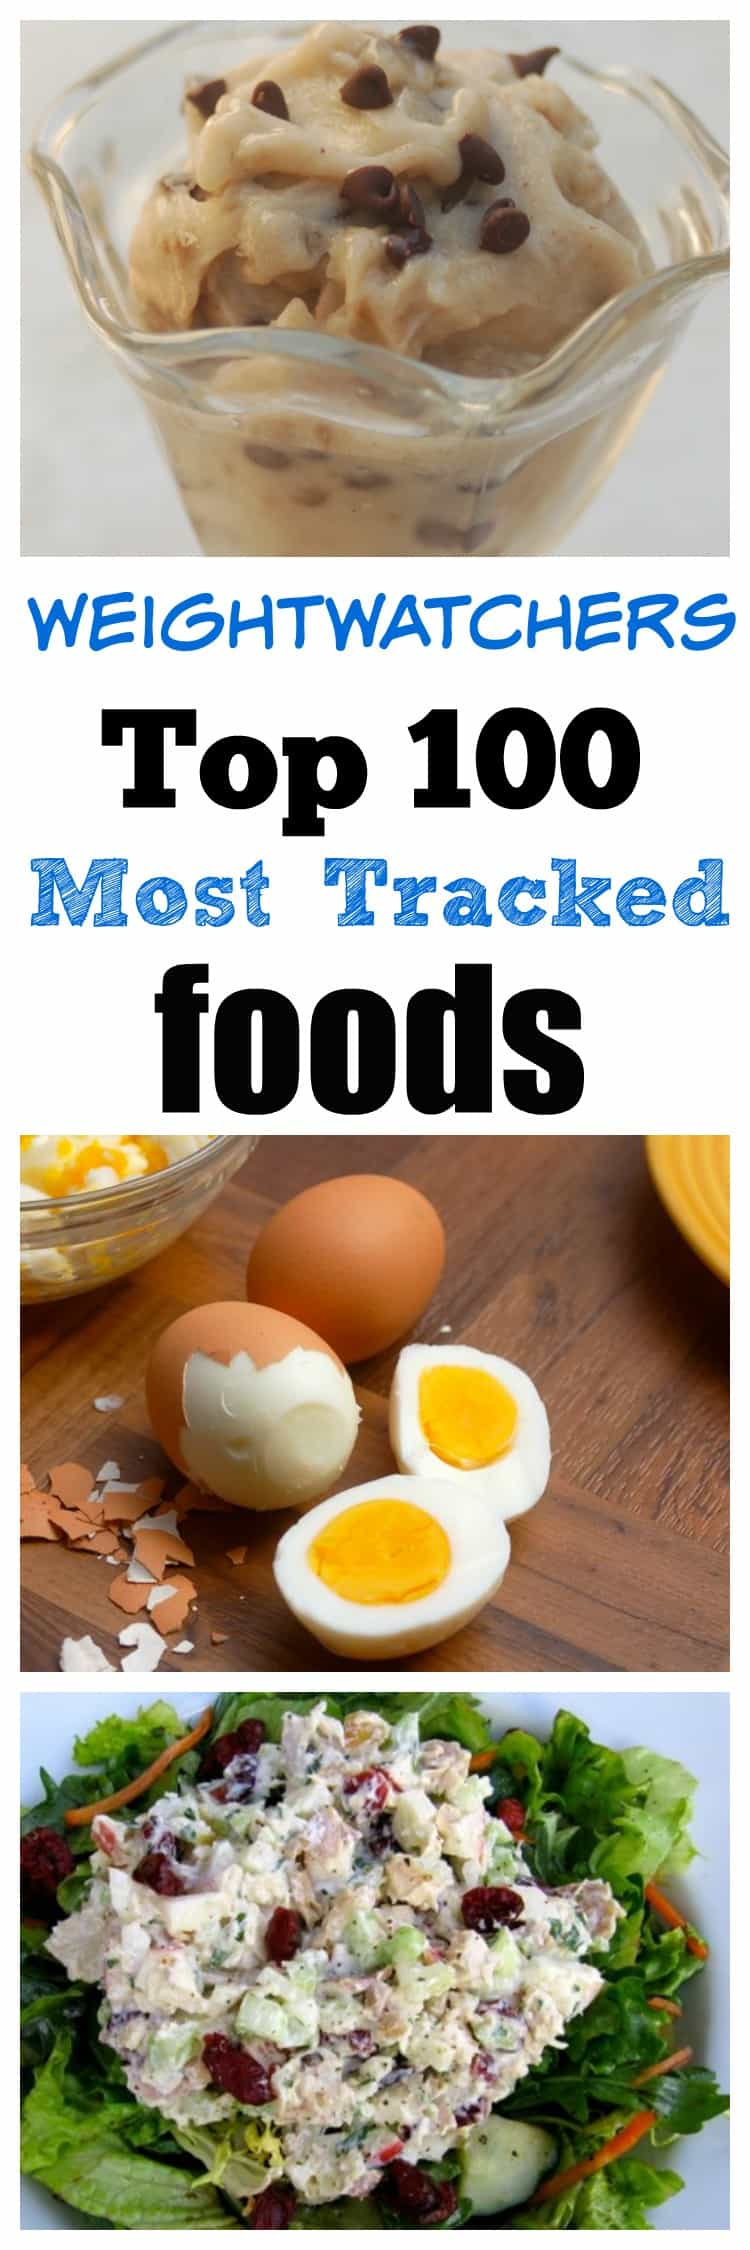 Weight Watchers Top 100 Most Tracked Foods with Freestyle SmartPoints Values #weightwatchers #wwfreestyle #healthyfoodslist #weightwatchersfoods #simplenourishedliving